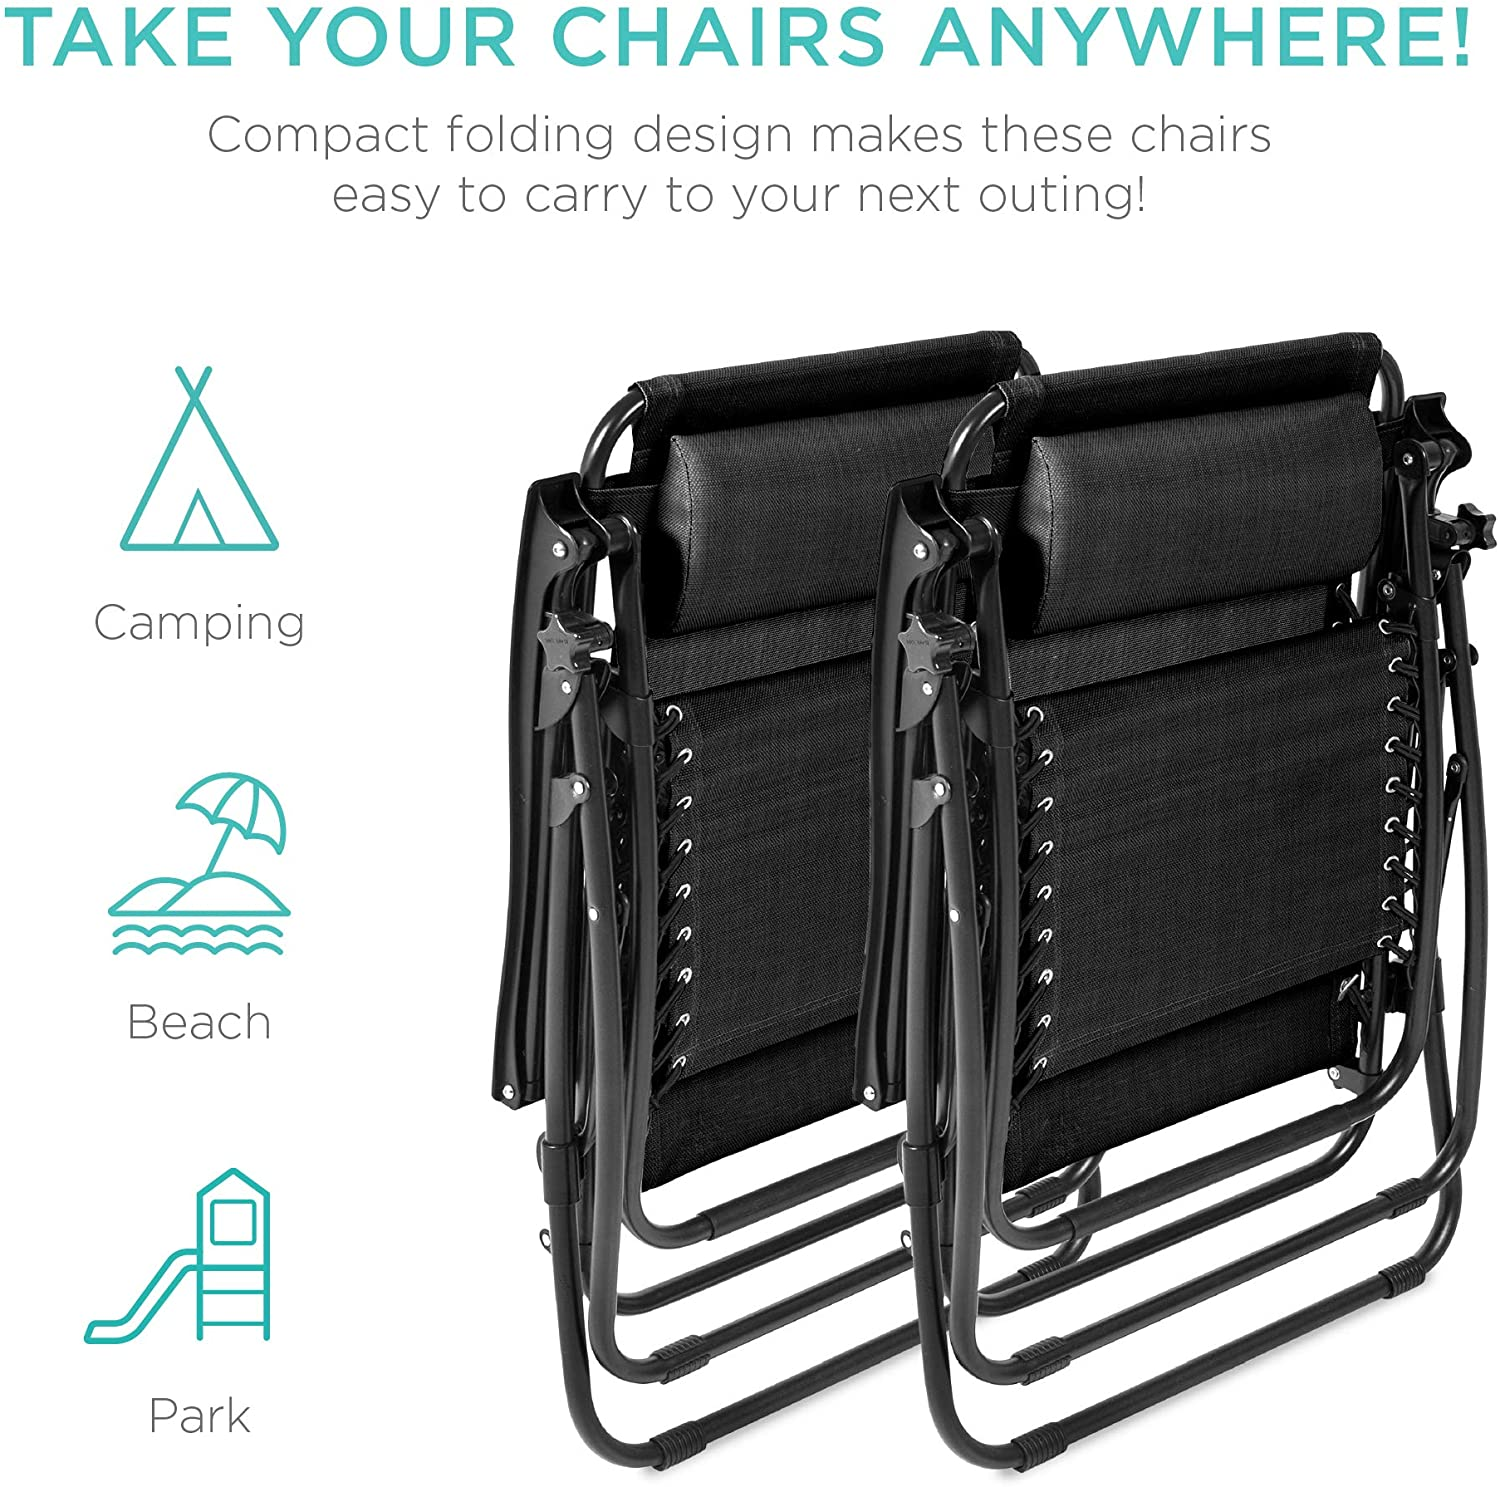 Best Choice Products Zero Gravity Chair take your chair anywhere